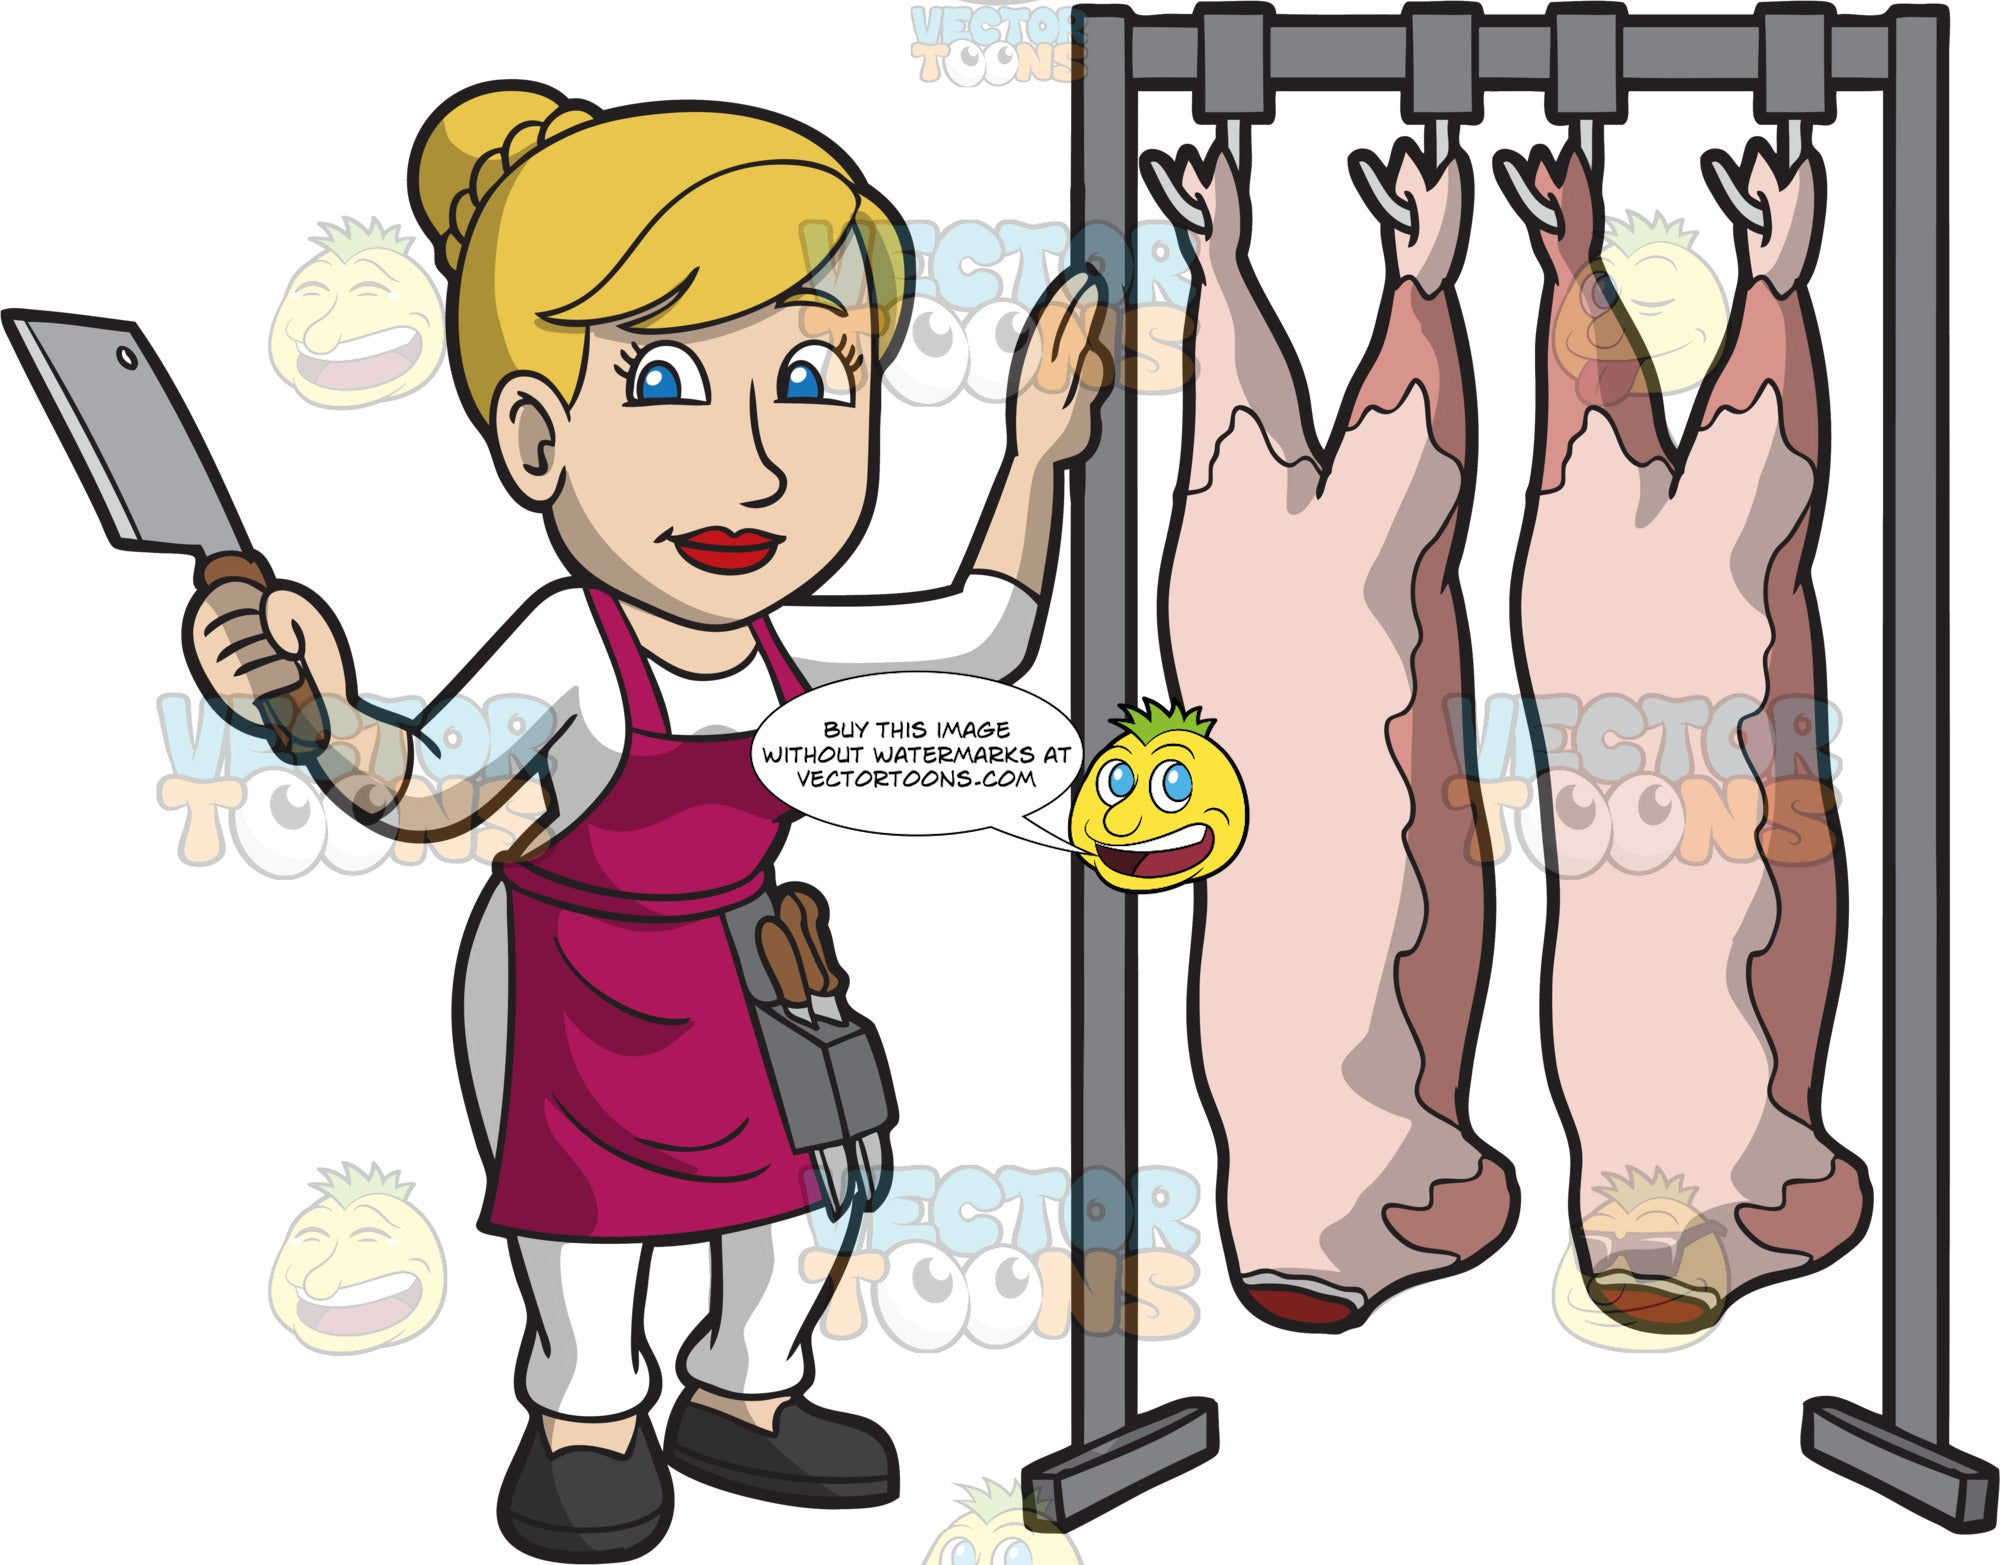 A Female Butcher Standing Next To Slaughtered Pigs